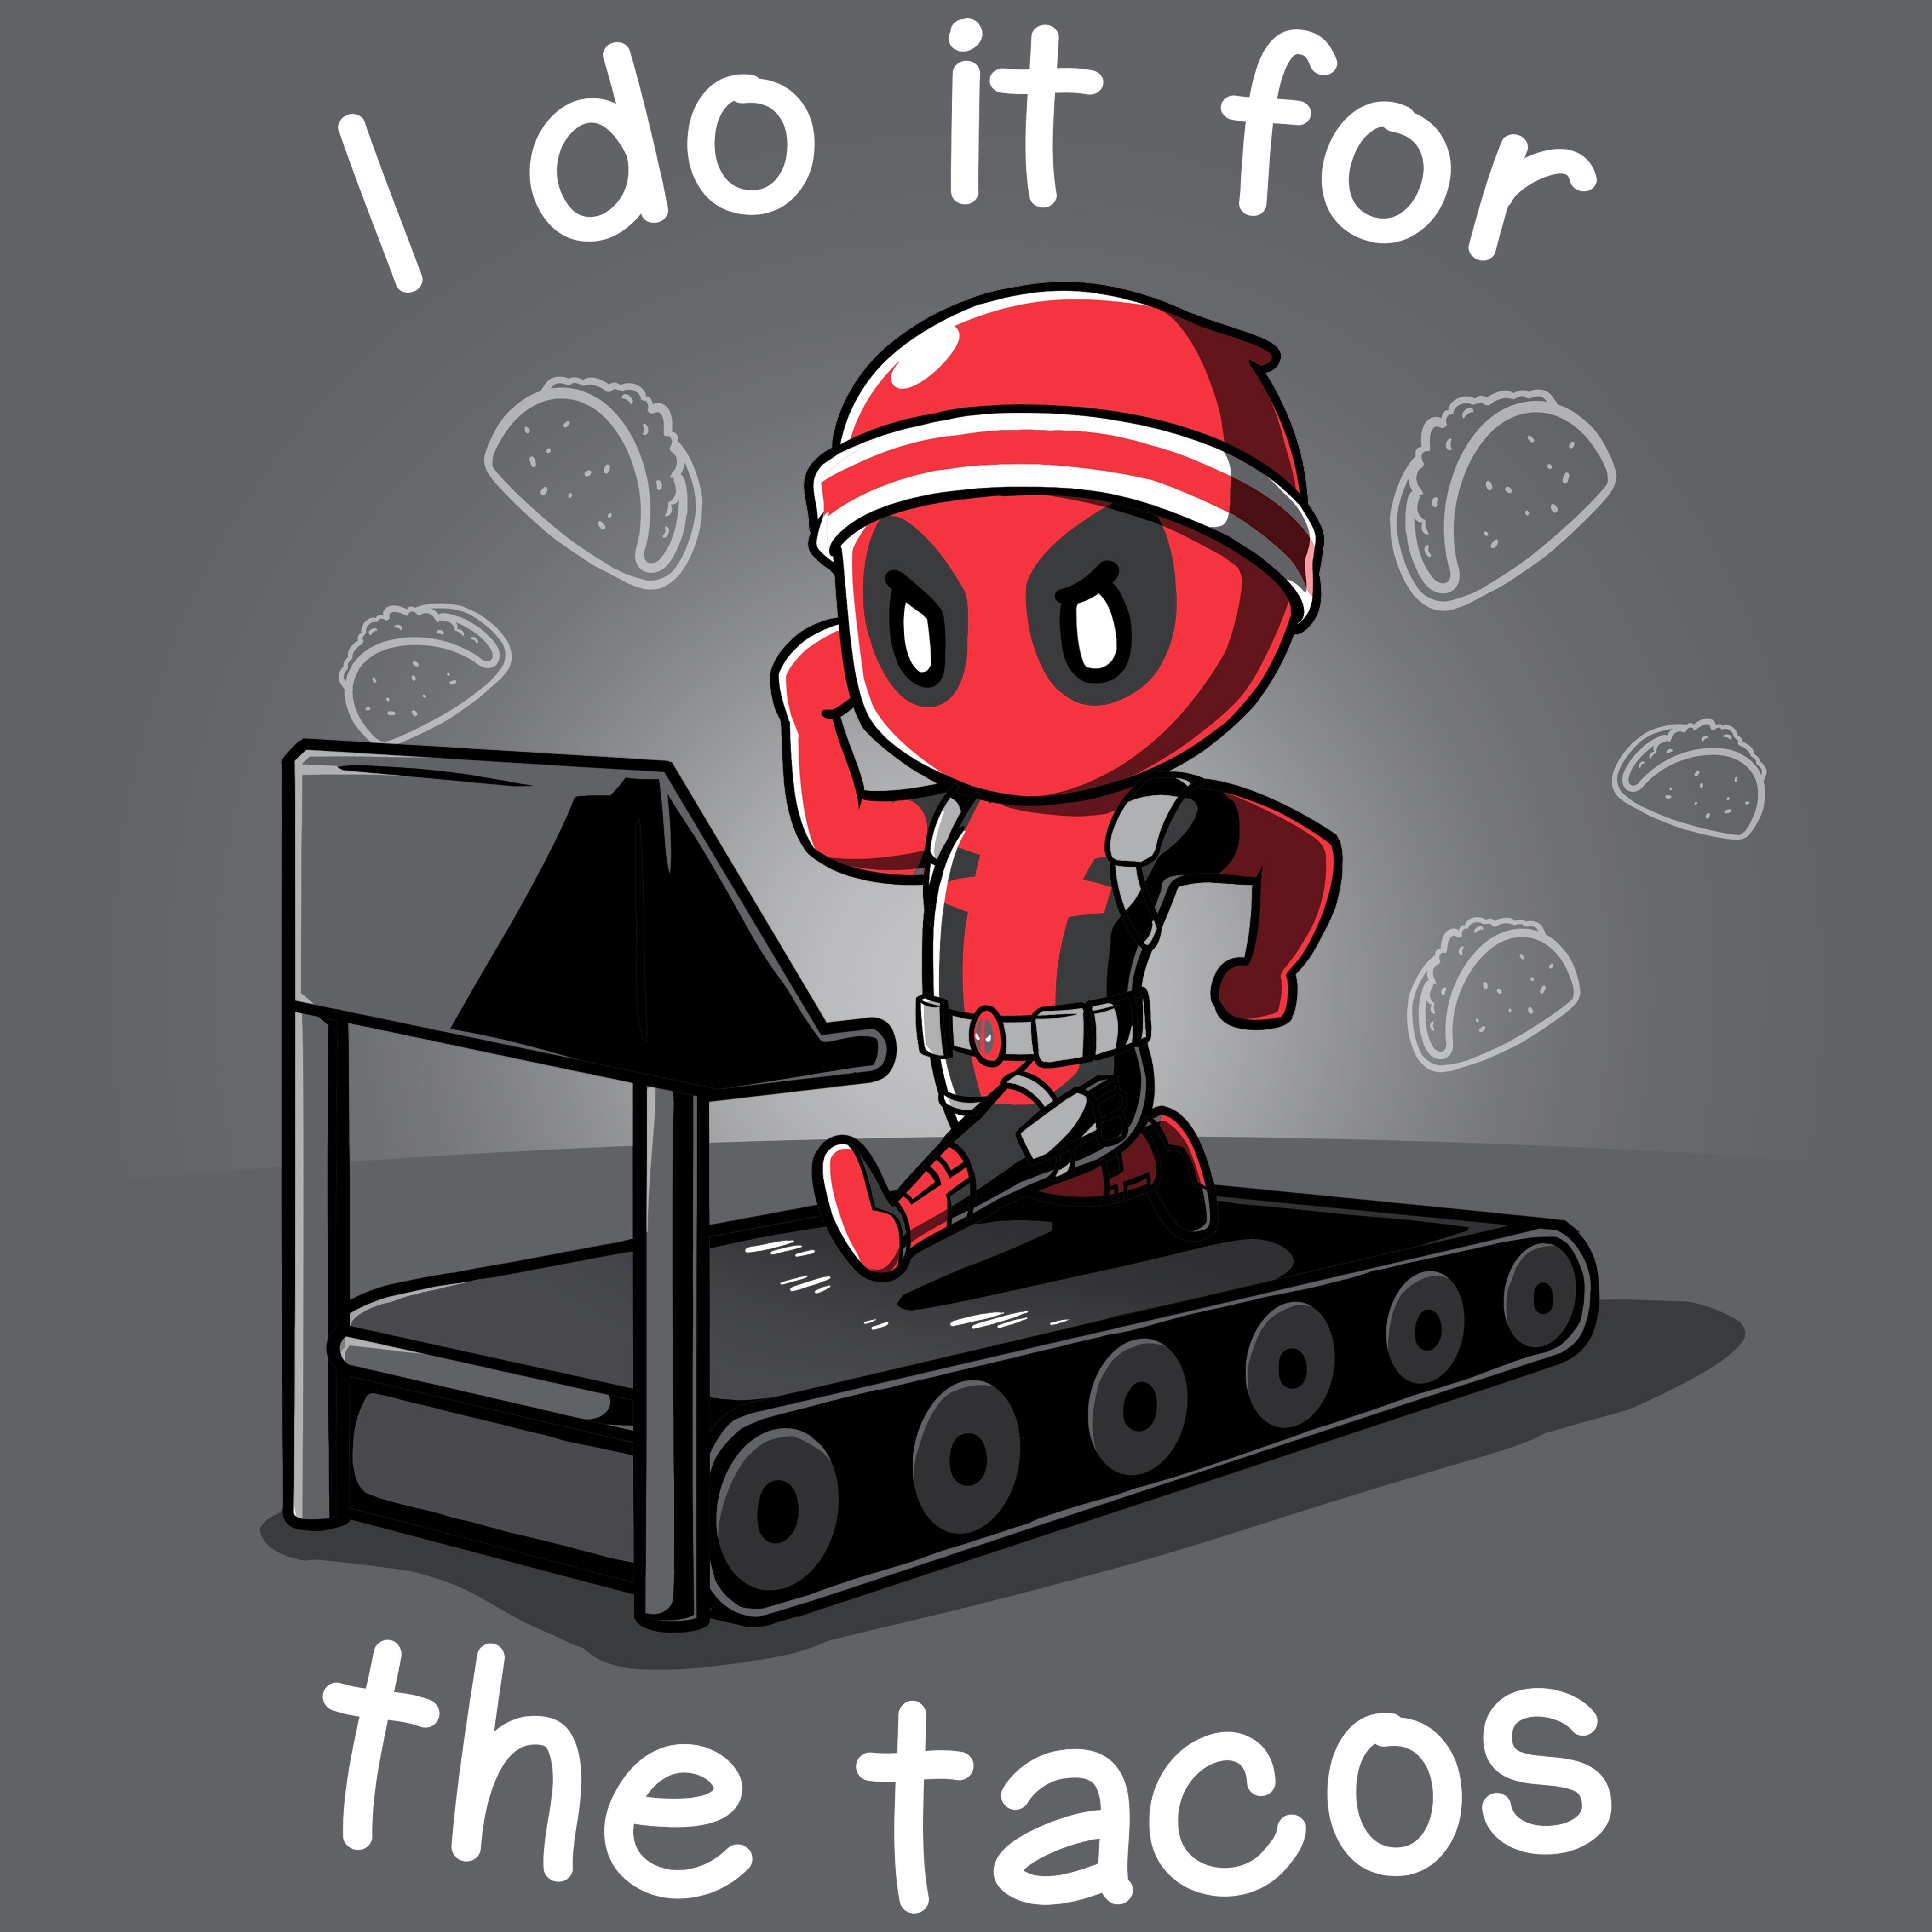 I Do It For The Tacos